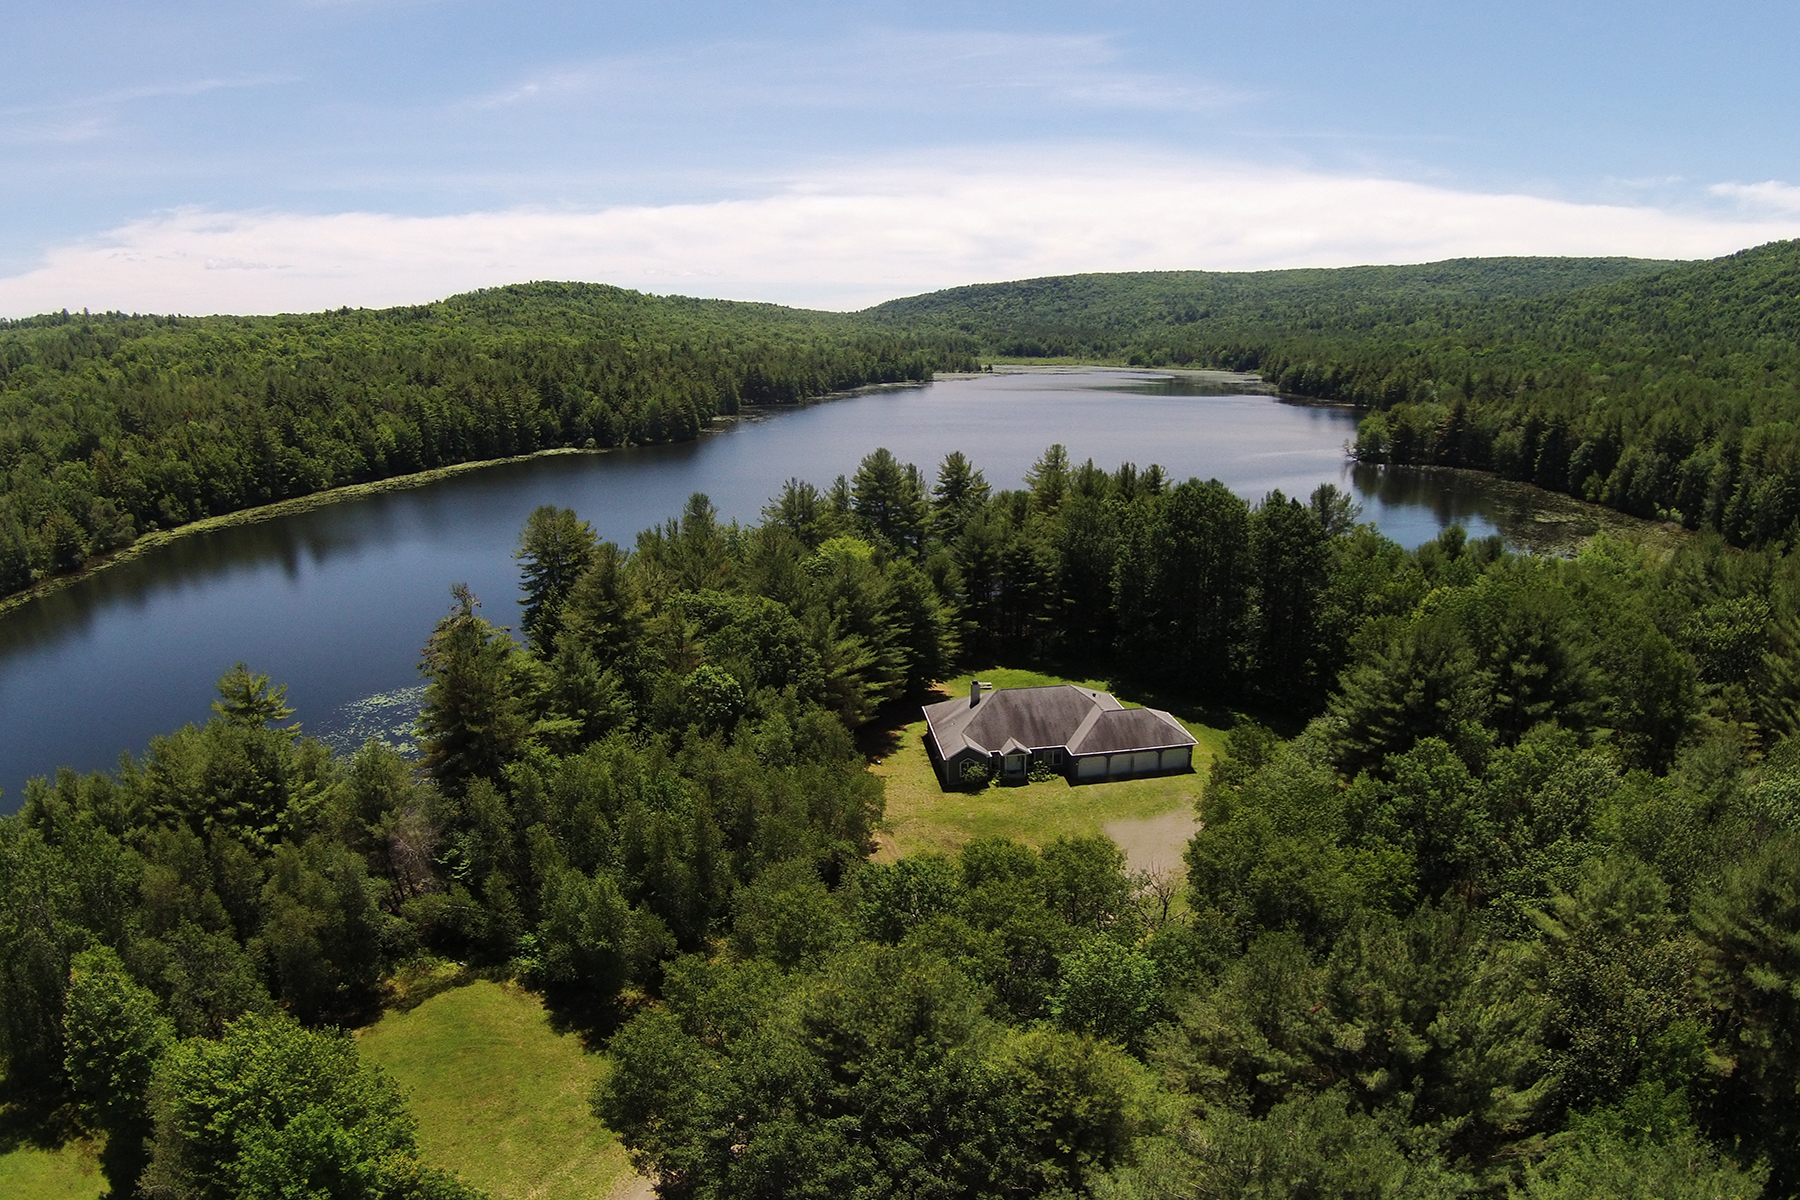 Single Family Home for Sale at Private Lake in the Adirondacks 191 Collins Gifford Northville, New York 12134 United States